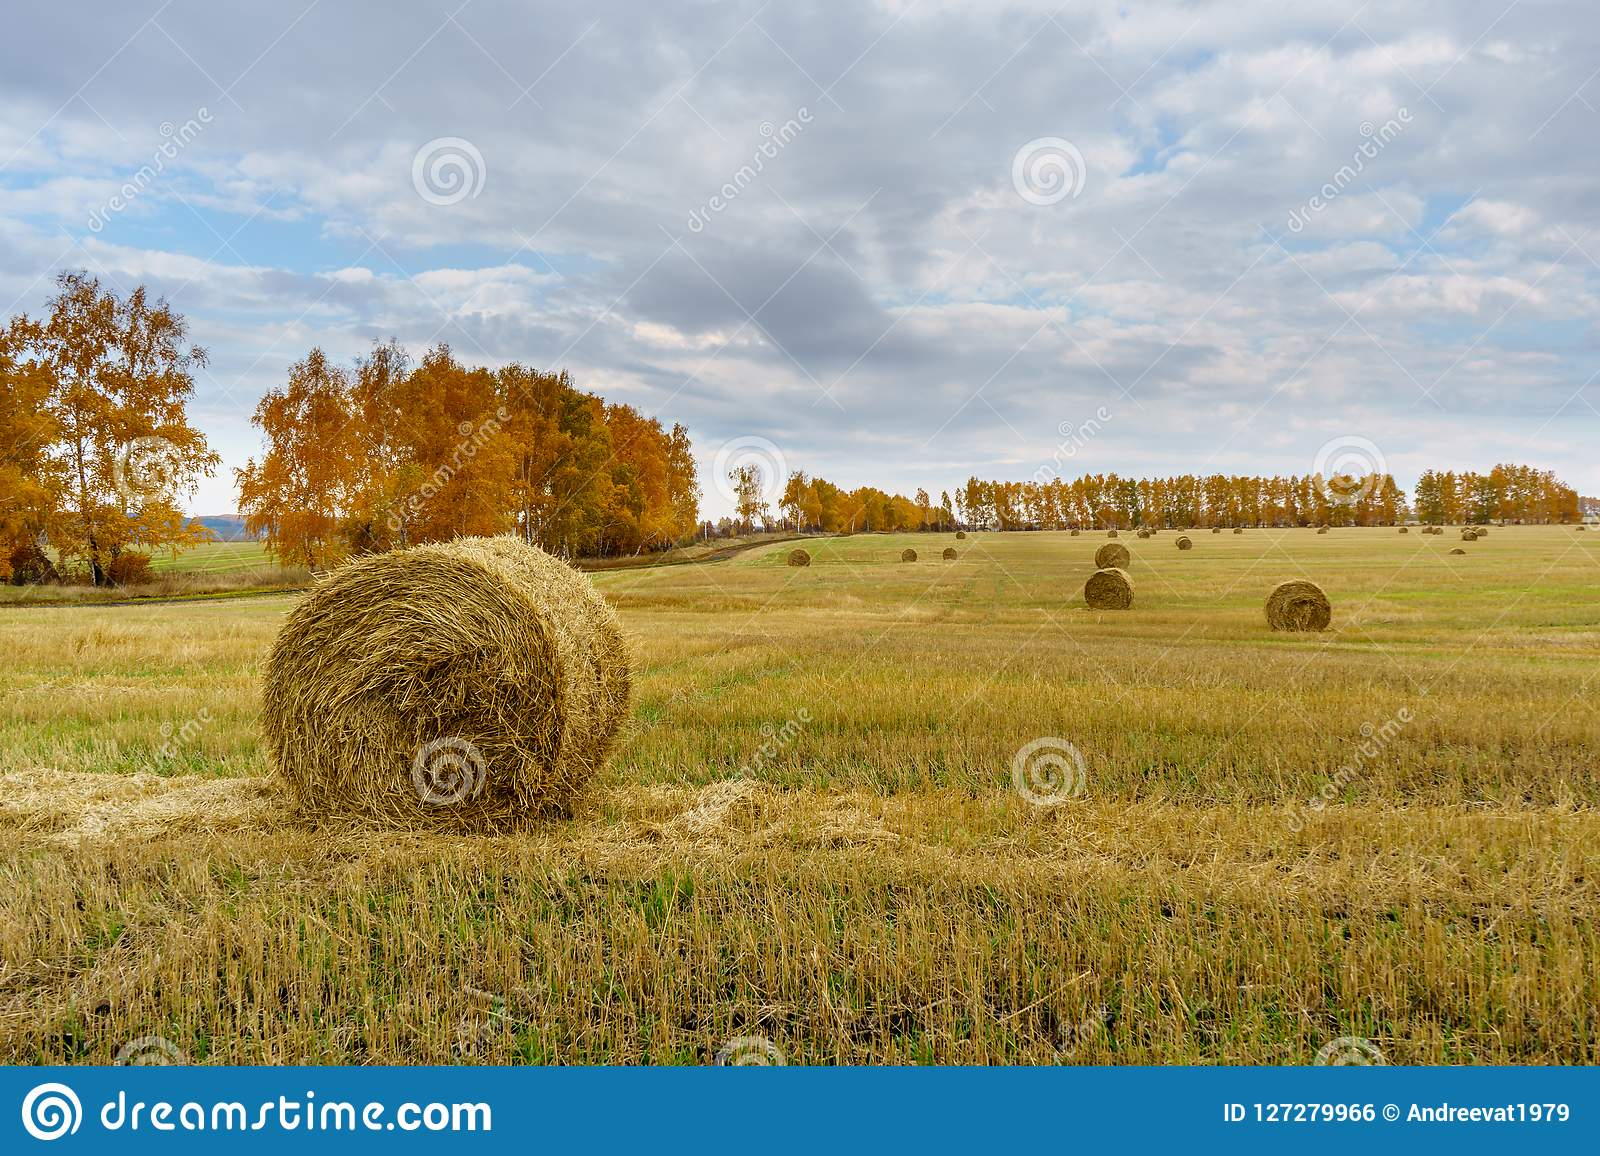 Picturesque autumn landscape with beveled field and straw bales.